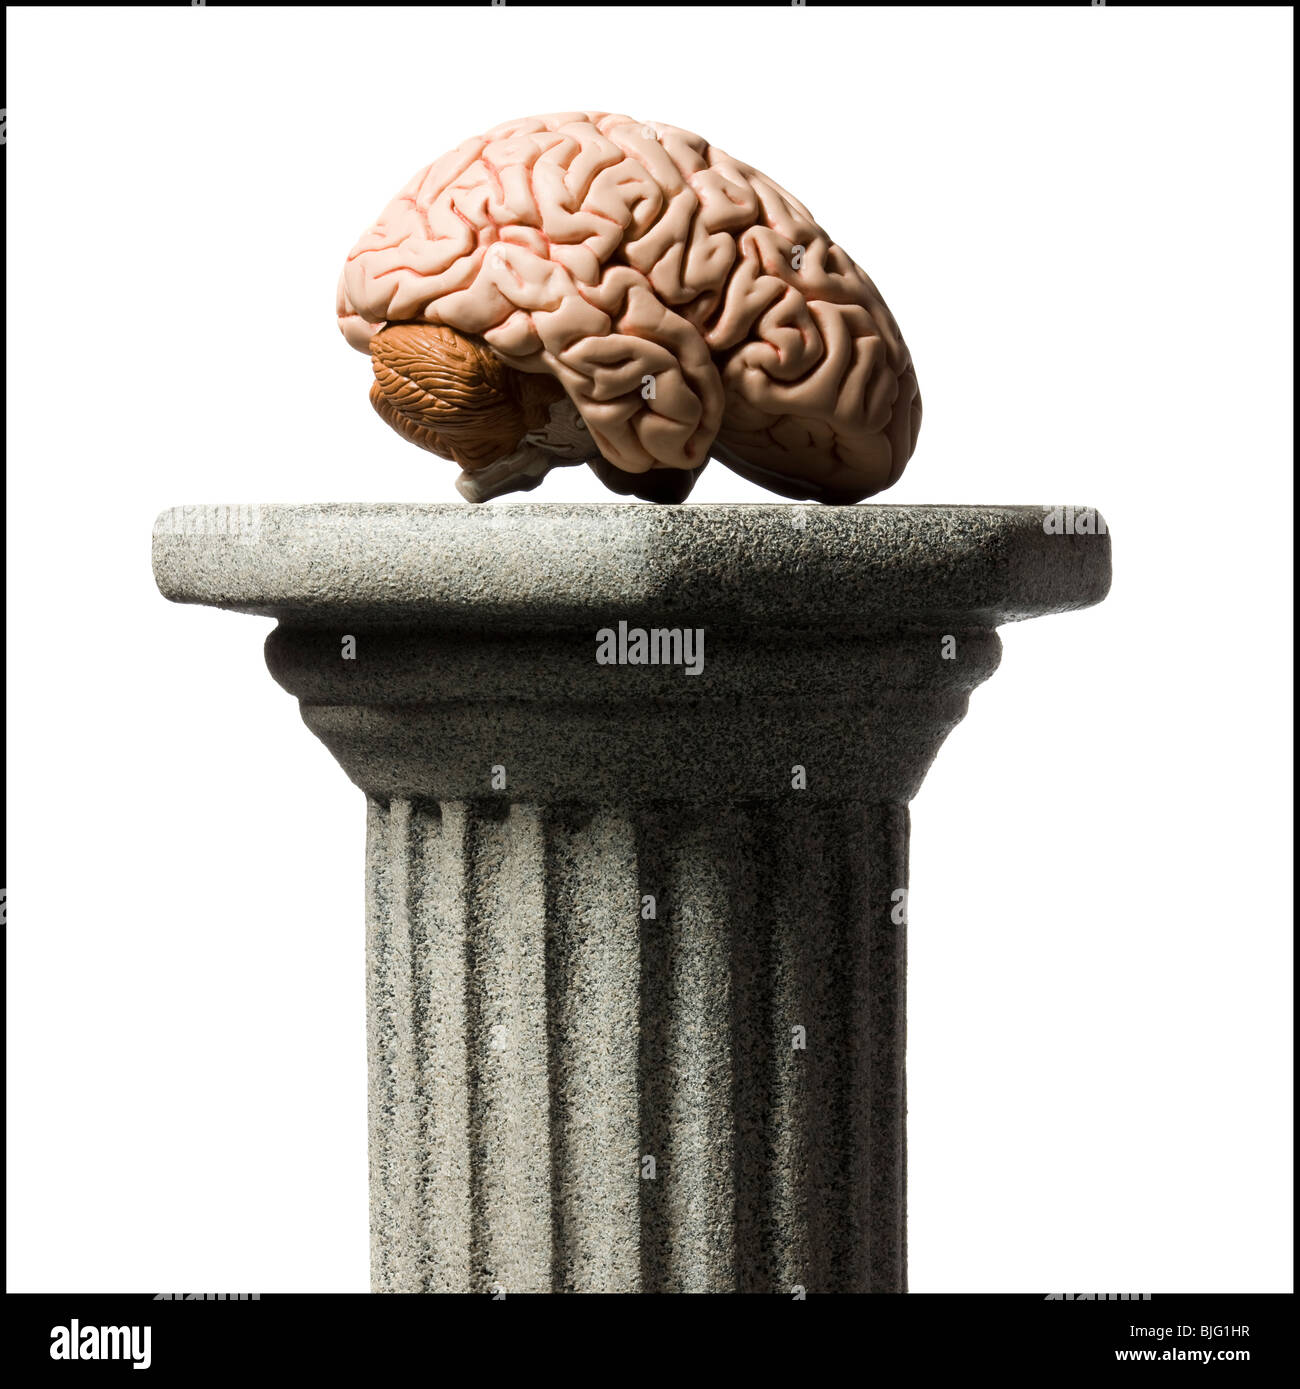 brain on a pedestal - Stock Image